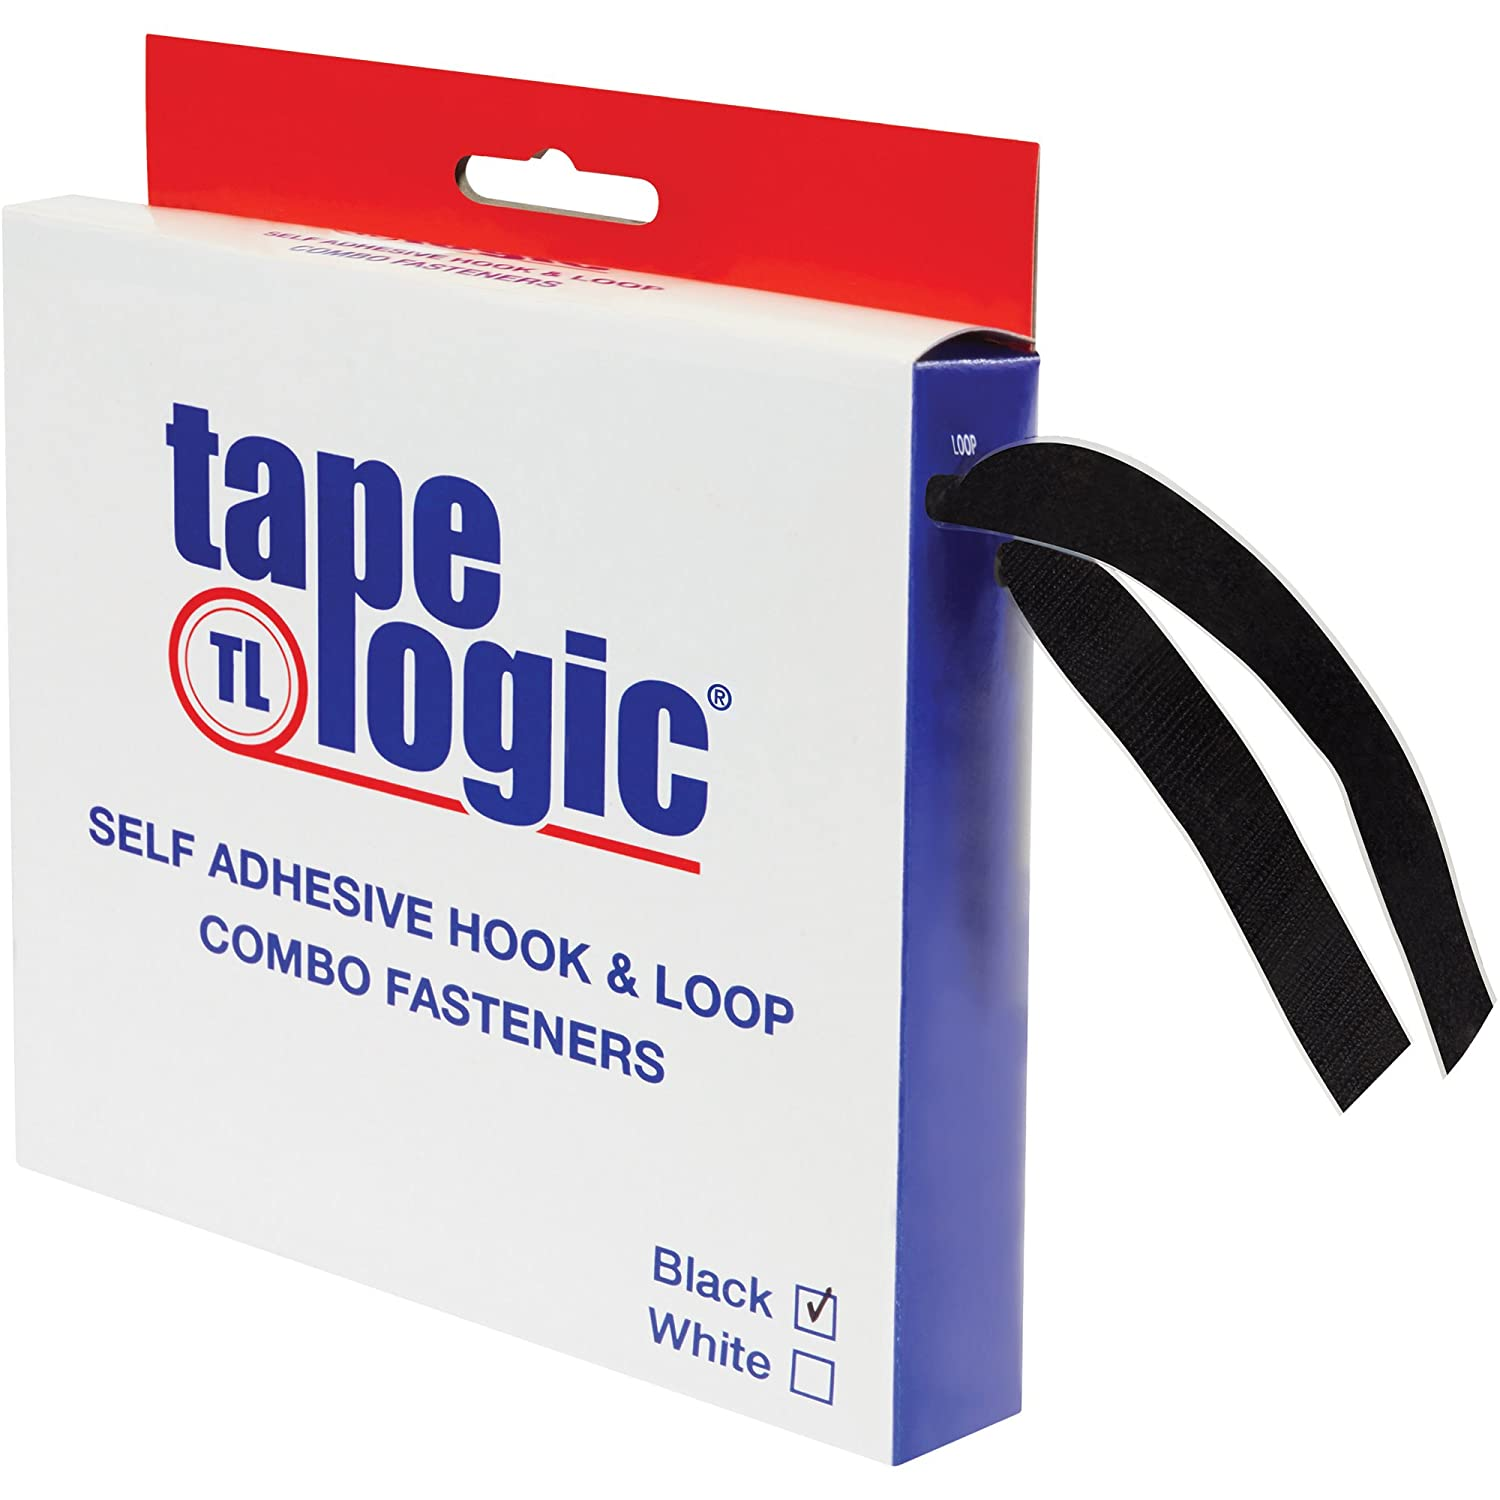 Boxes Fast Tape Logic Combo Pack 15' Strips Black Quantity limited Over item handling ☆ x 1